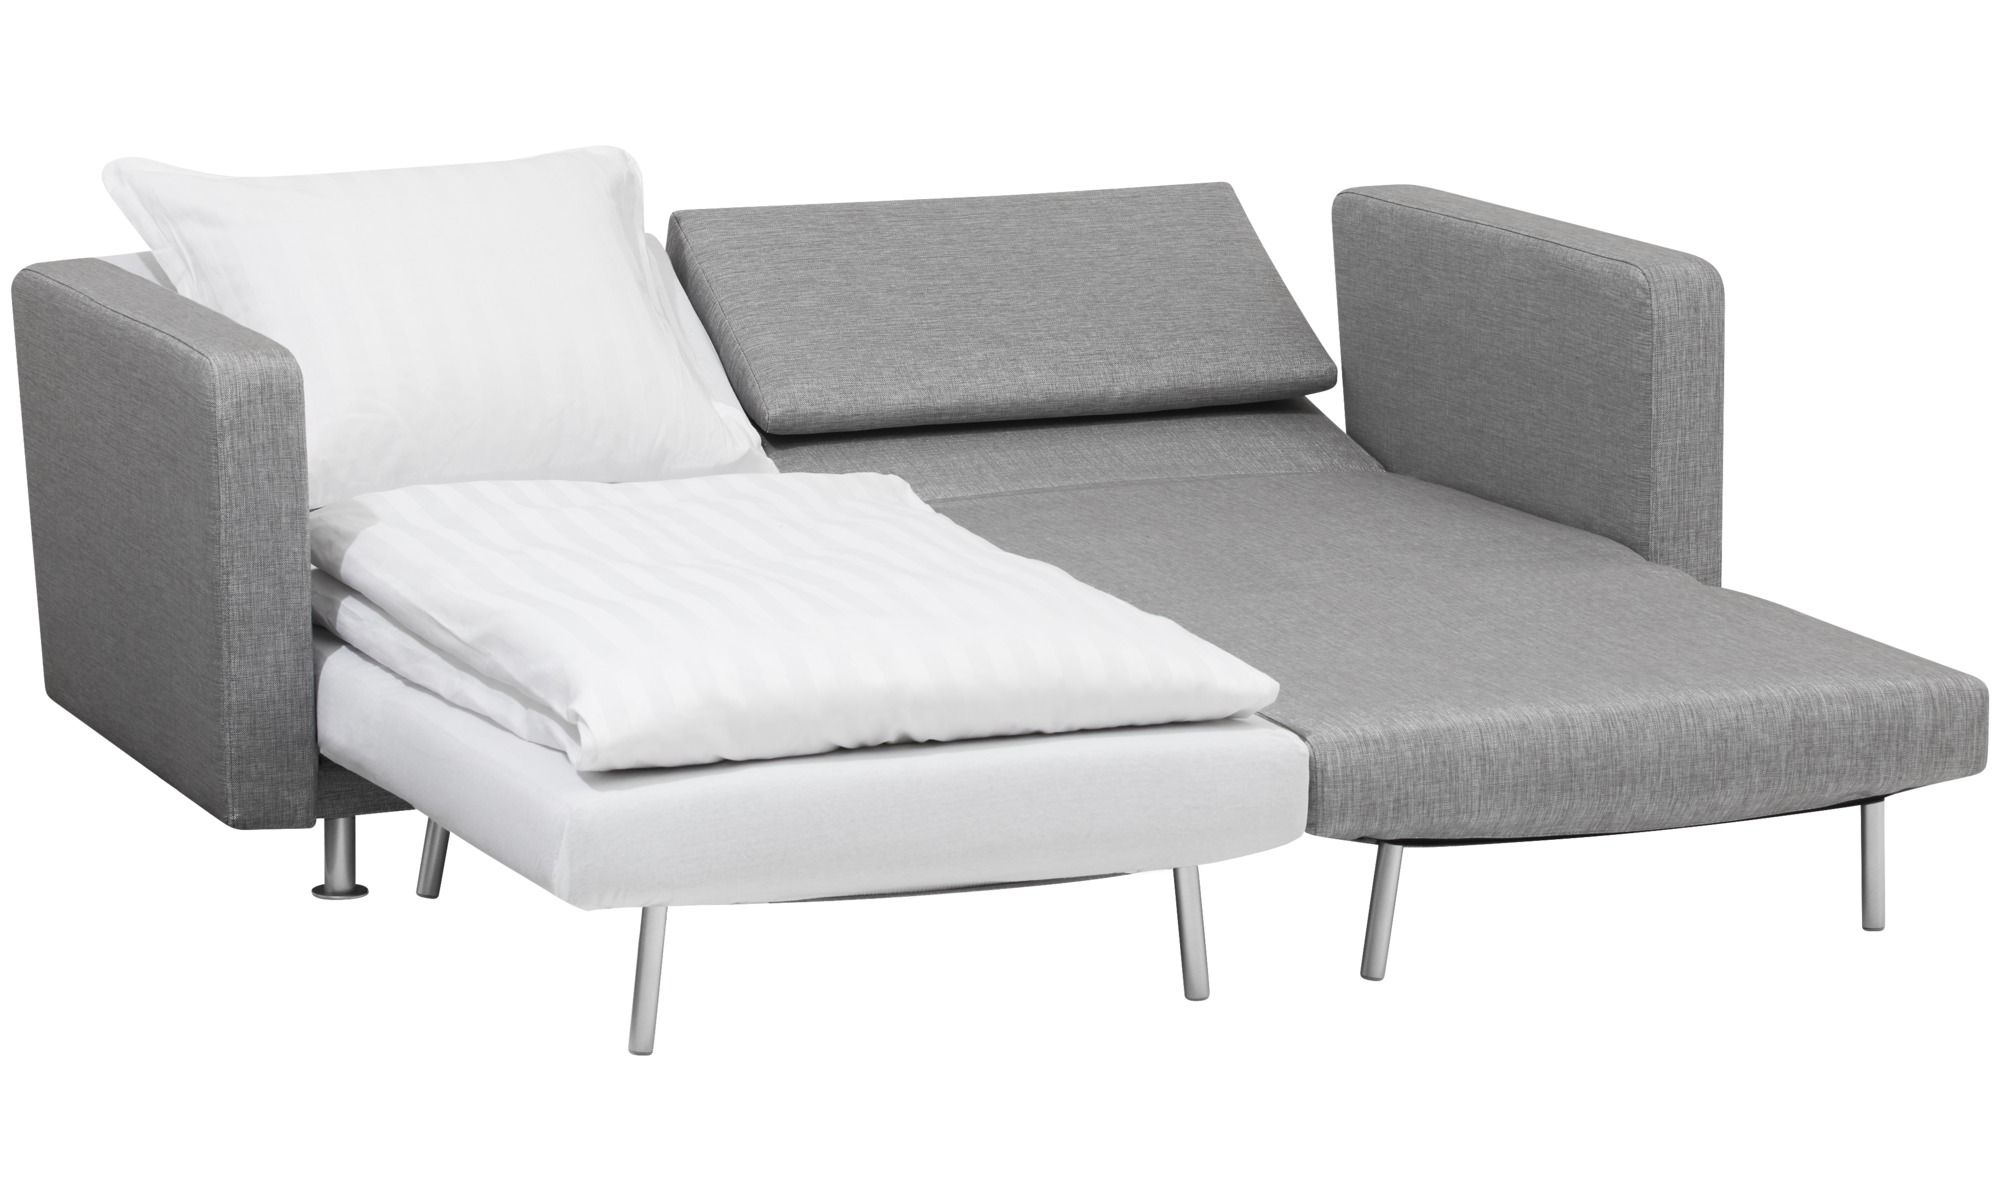 sofy rozk adane sofa melo 2 z le ank i funkcj spania boconcept. Black Bedroom Furniture Sets. Home Design Ideas